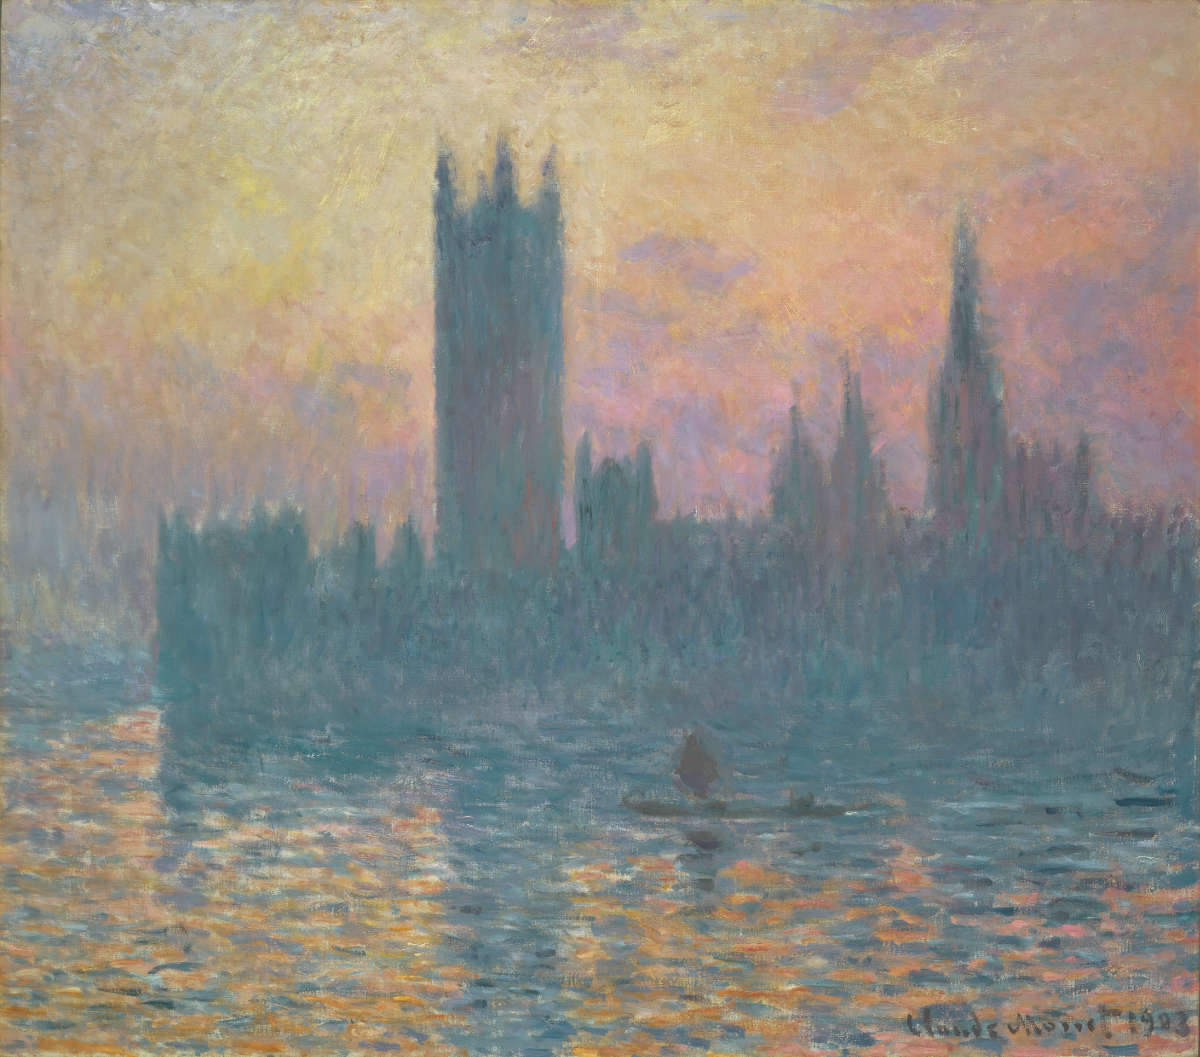 Feige. 5 -Den Houses of Parliament, Sonnenuntergang, Claude Monet, 1903. National Gallery of Art, Washington. Chester Dale Collection.